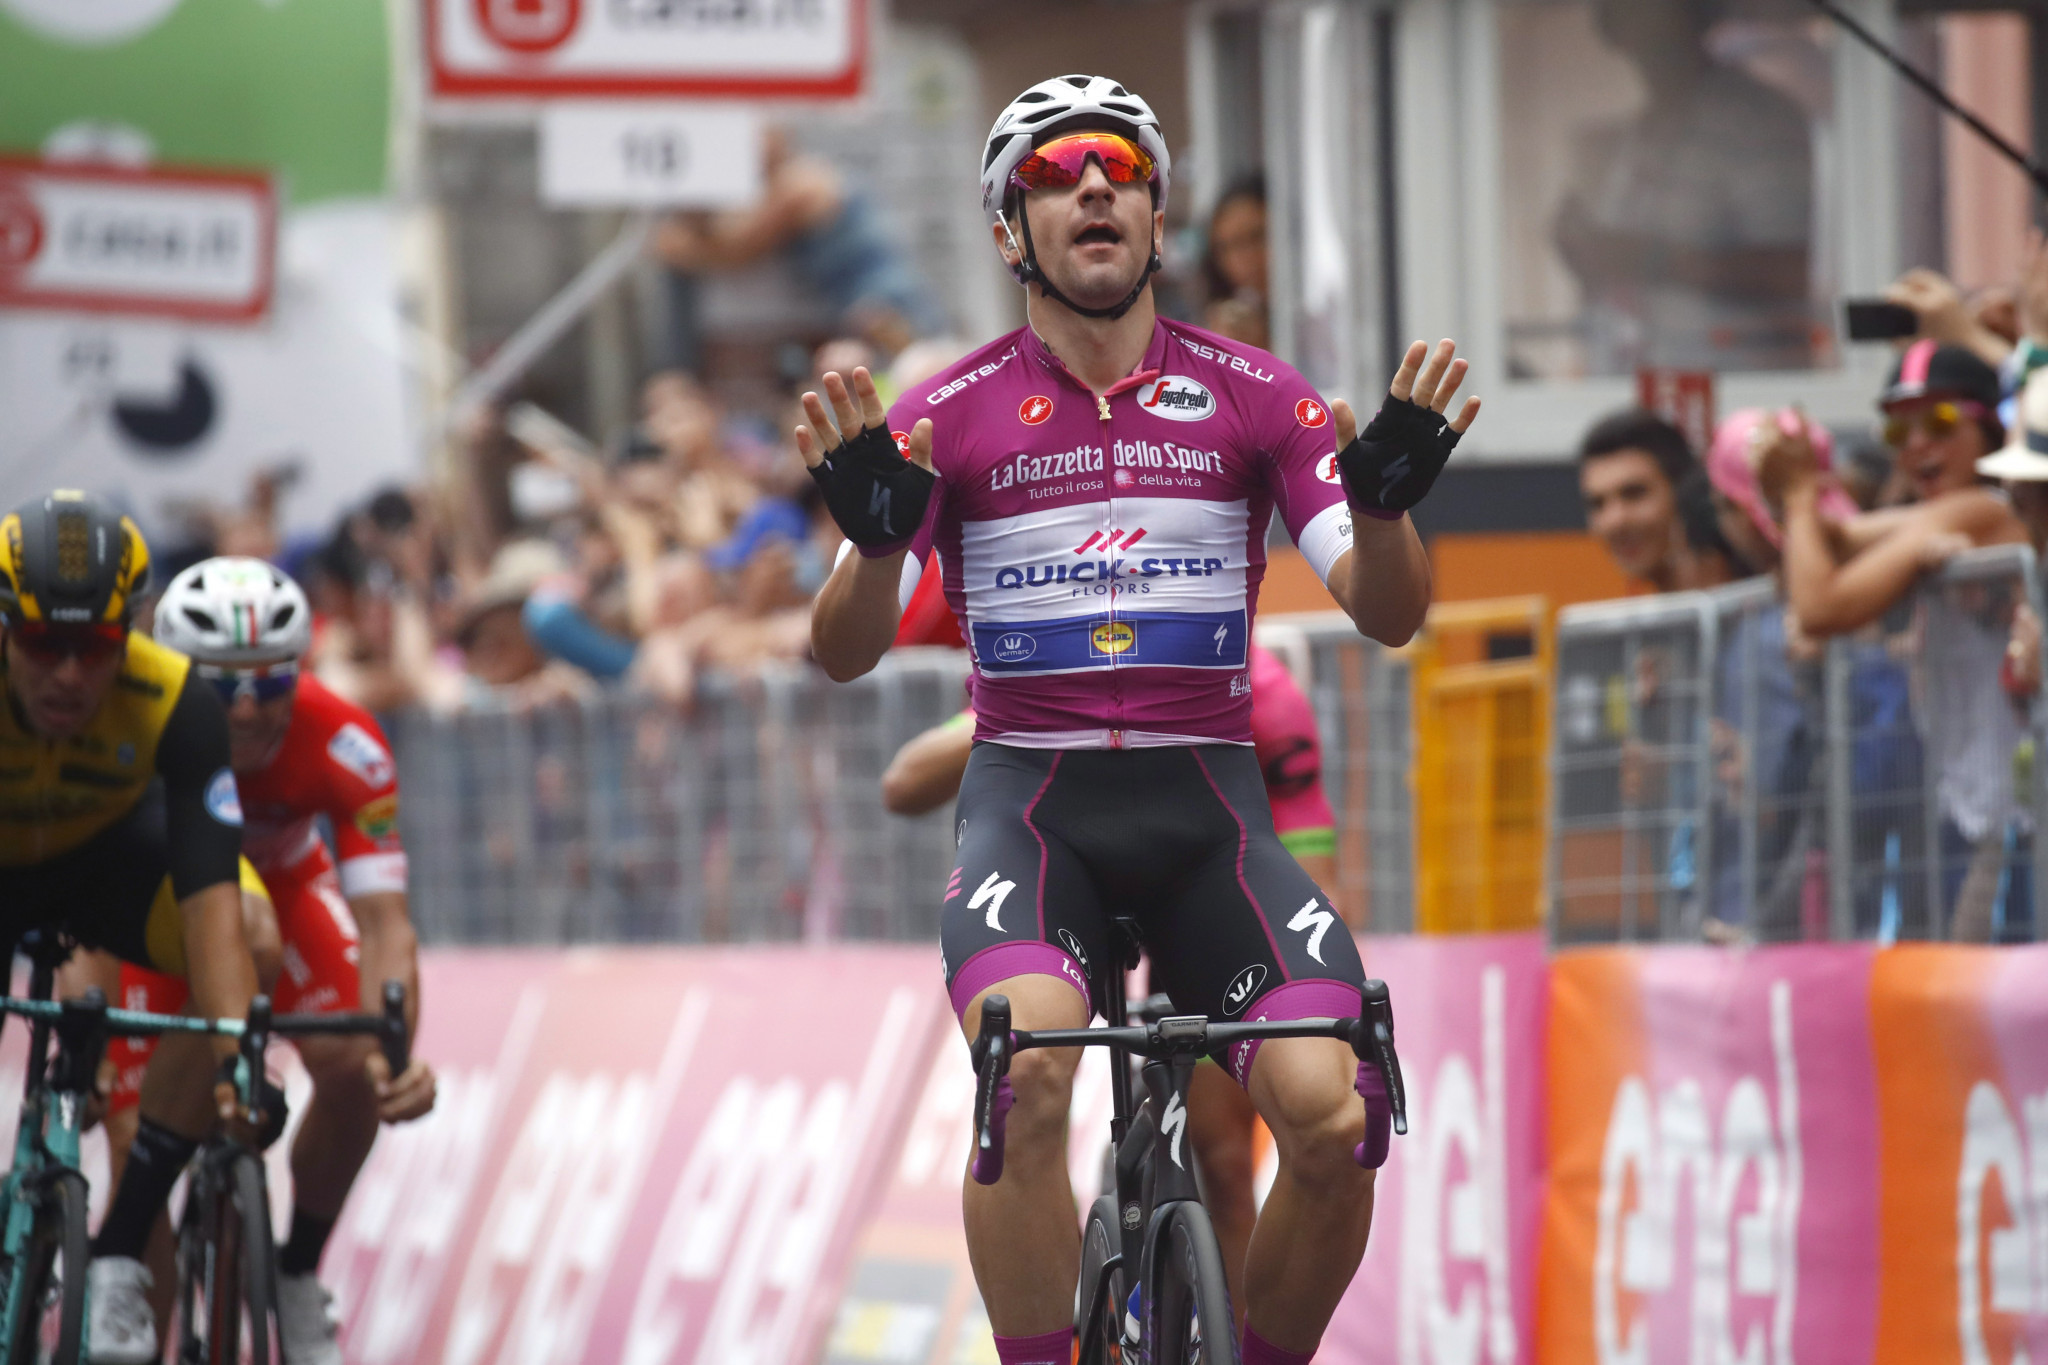 Viviani responds to setback by earning stage 13 victory at Giro d'Italia